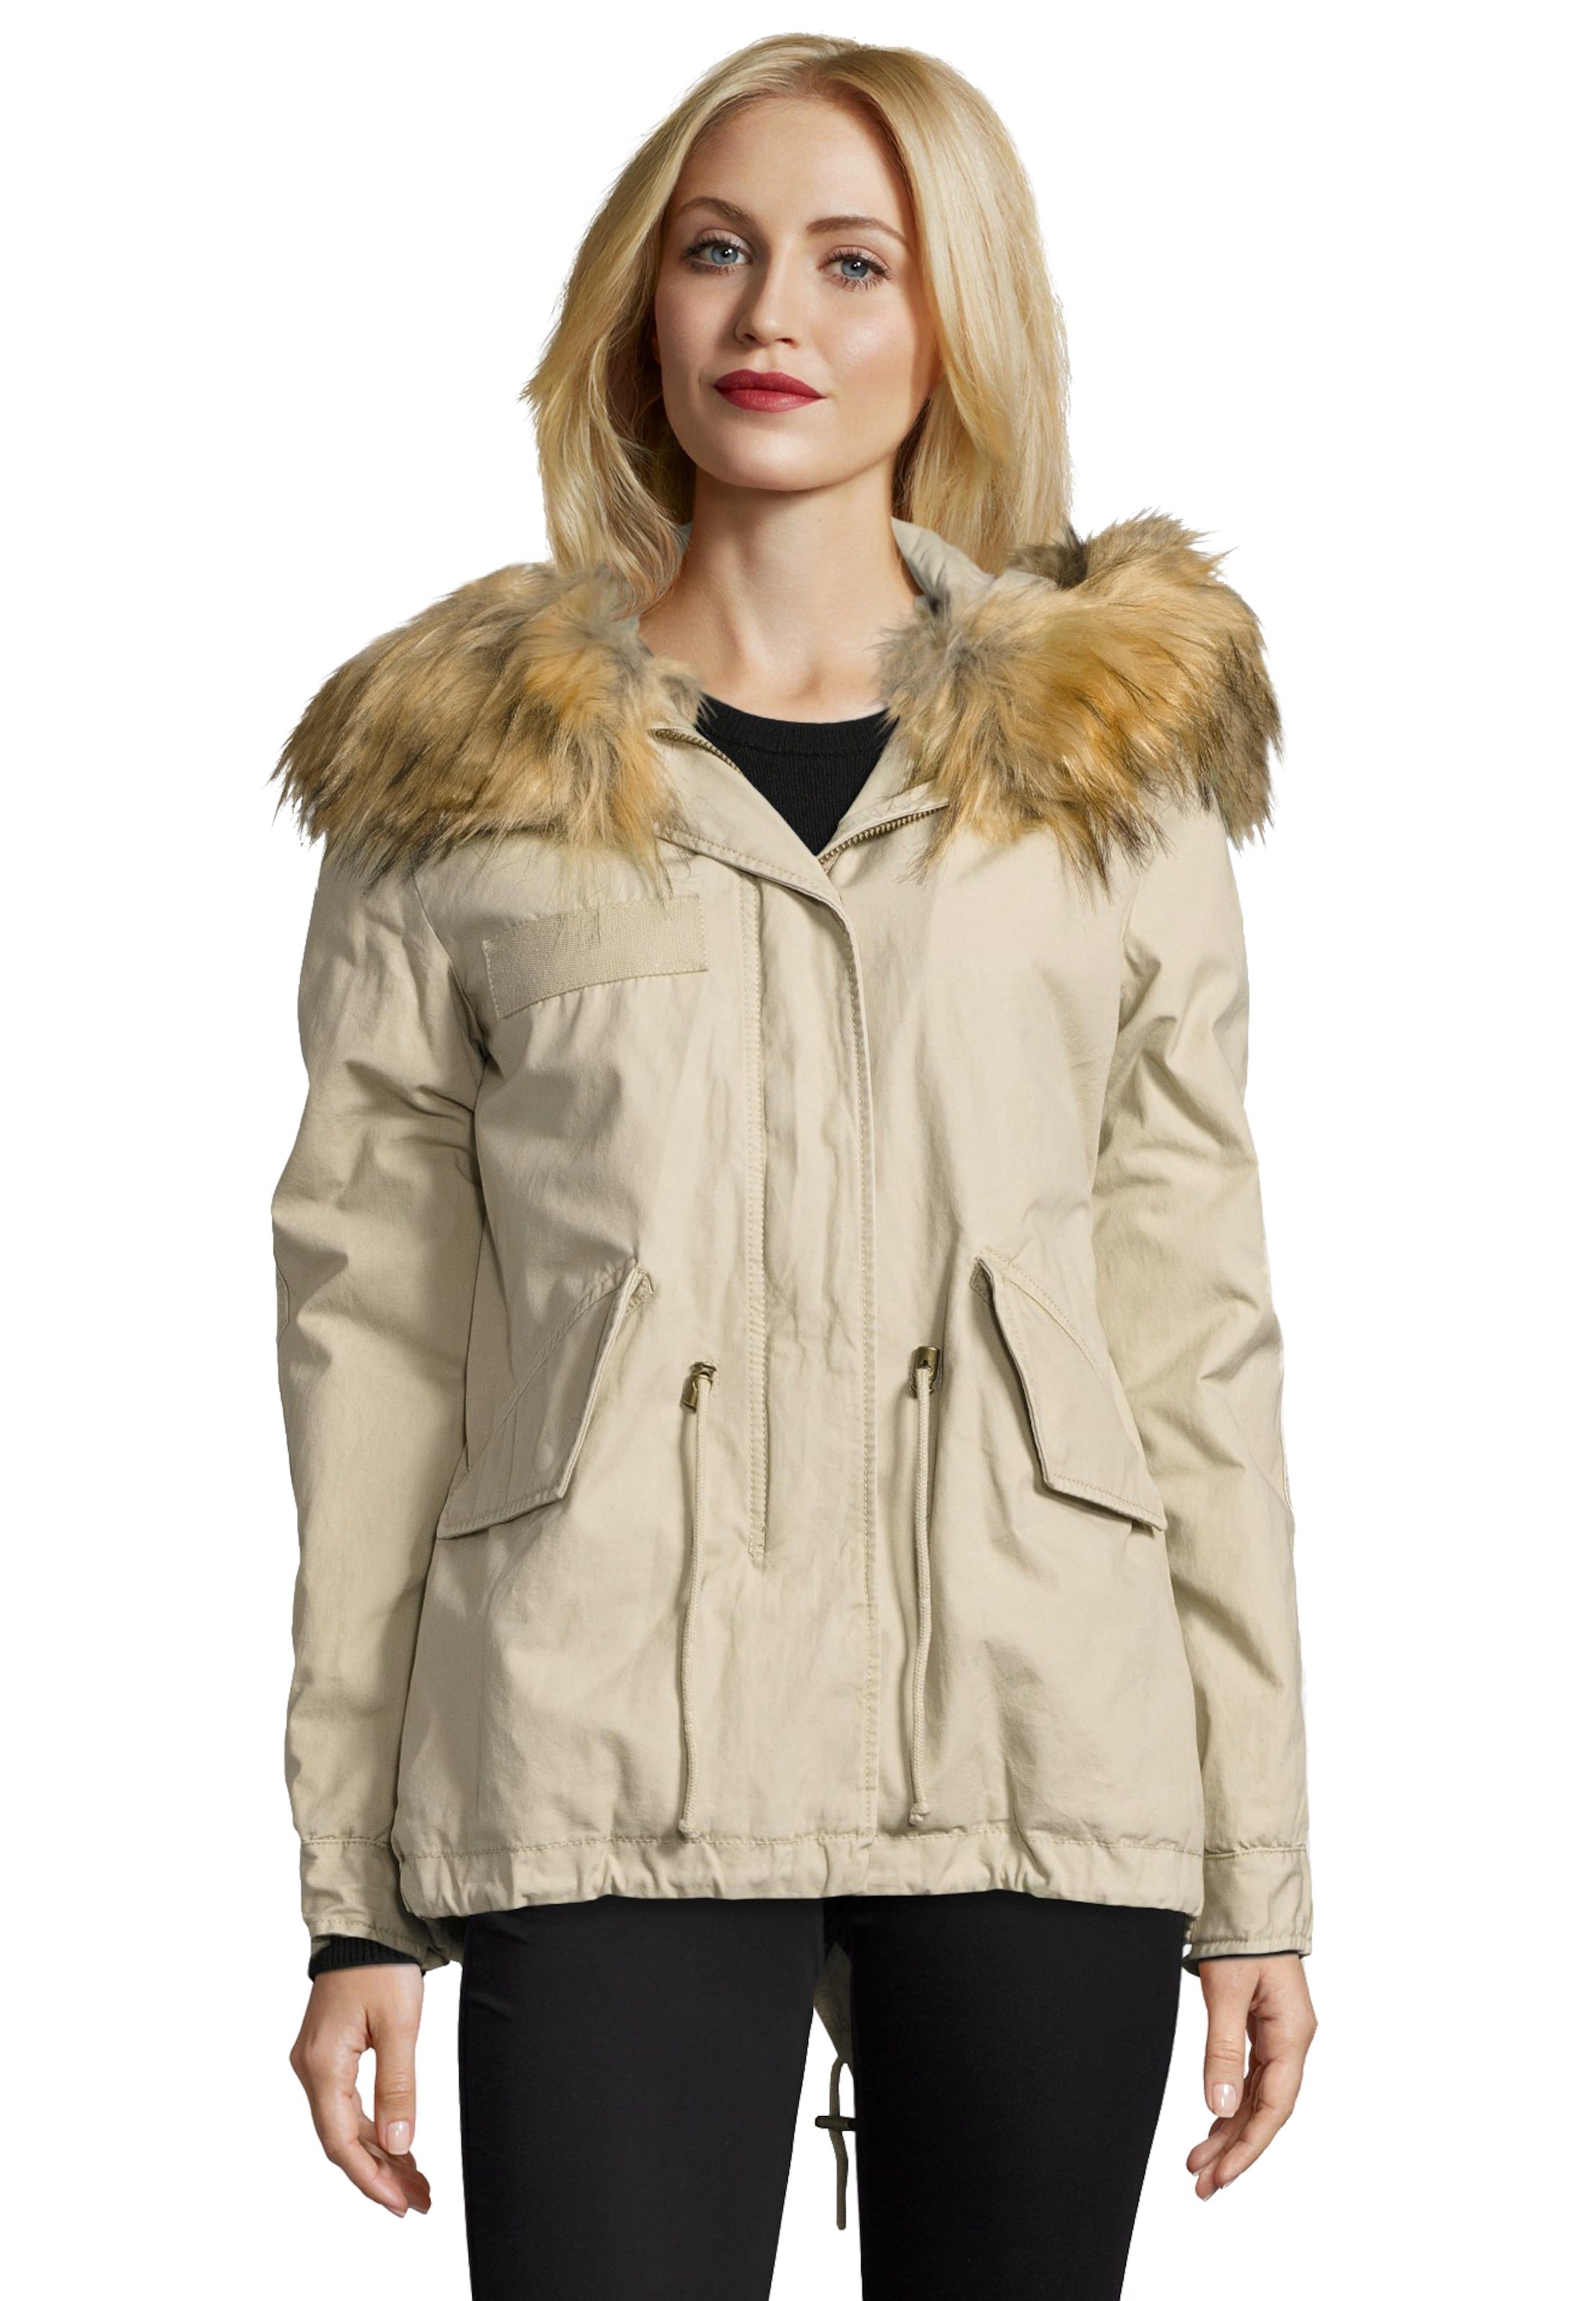 Blonde Parka 'zürs 316' No8 In Beige TlK1FJc